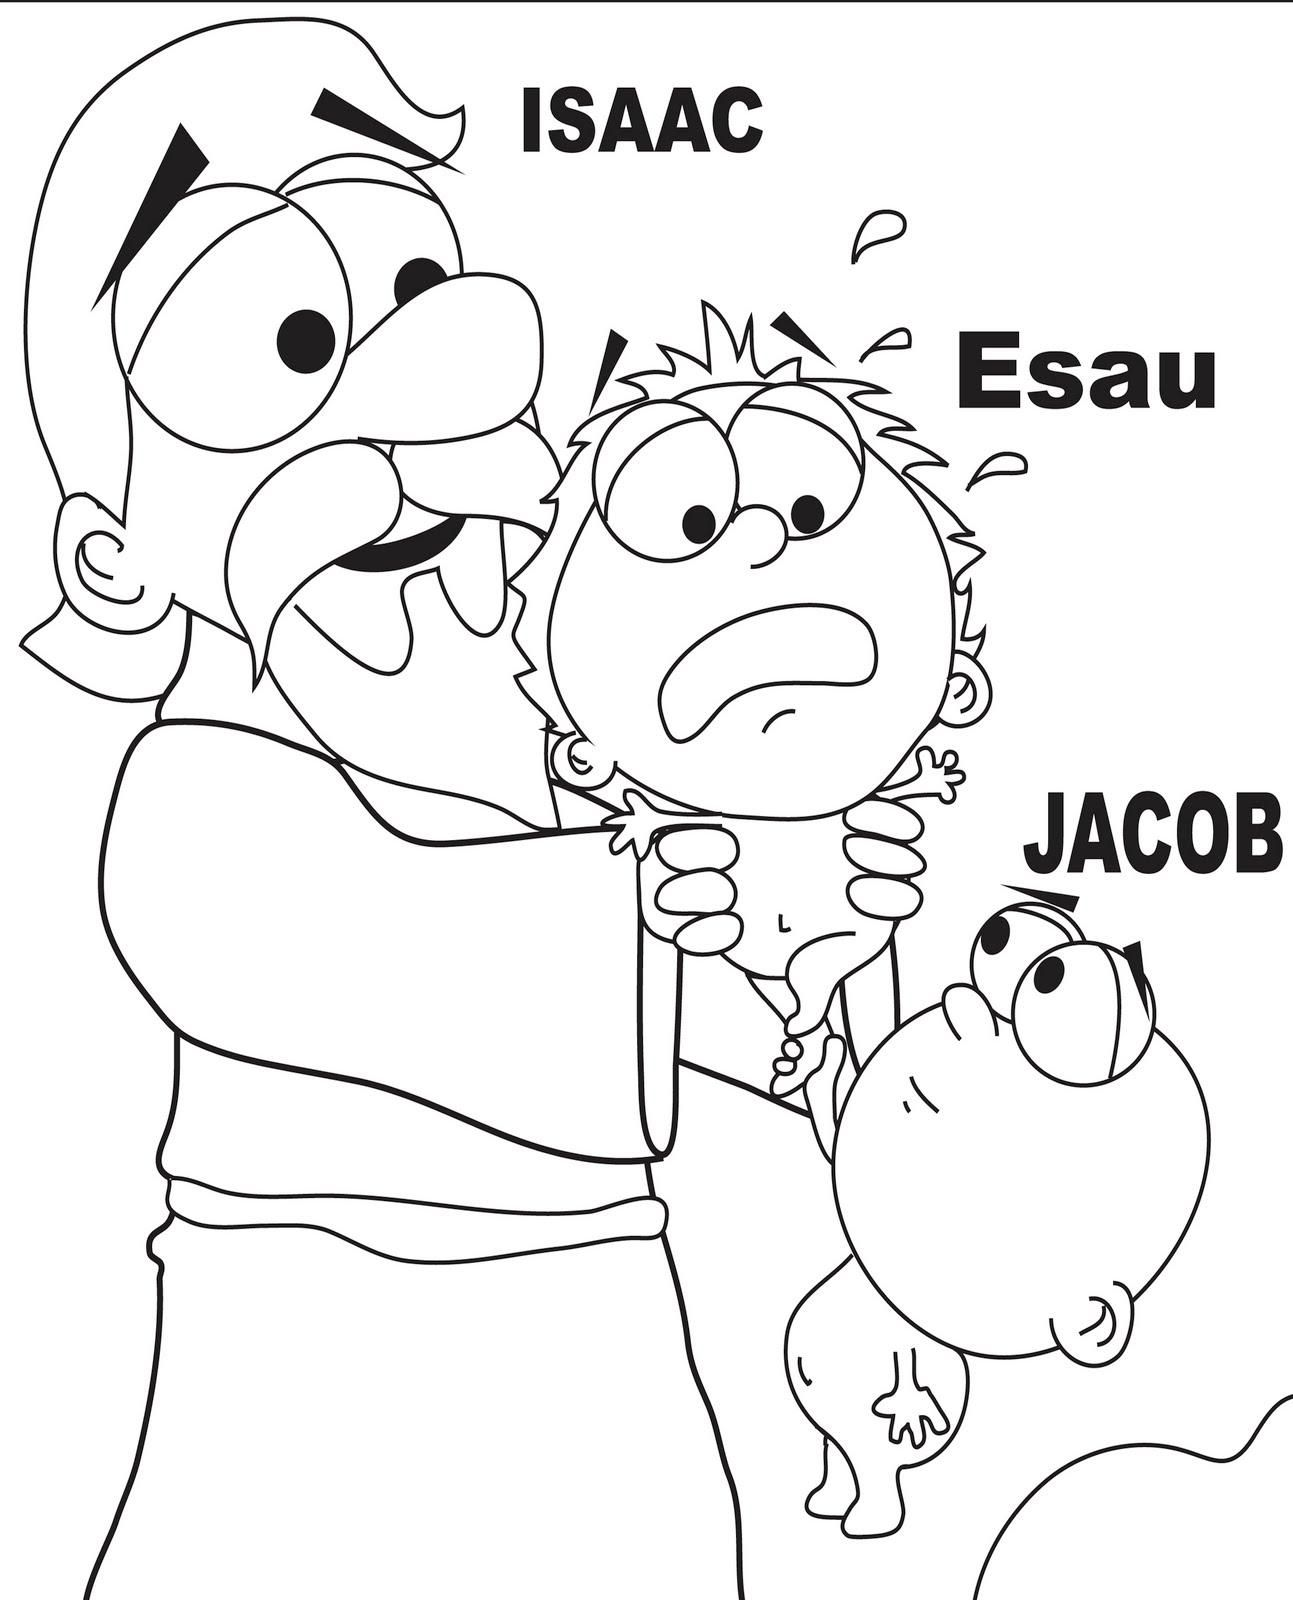 Sunday School Coloring Pages Jacob And Esau 1 Sunday School Coloring Pages Jacob